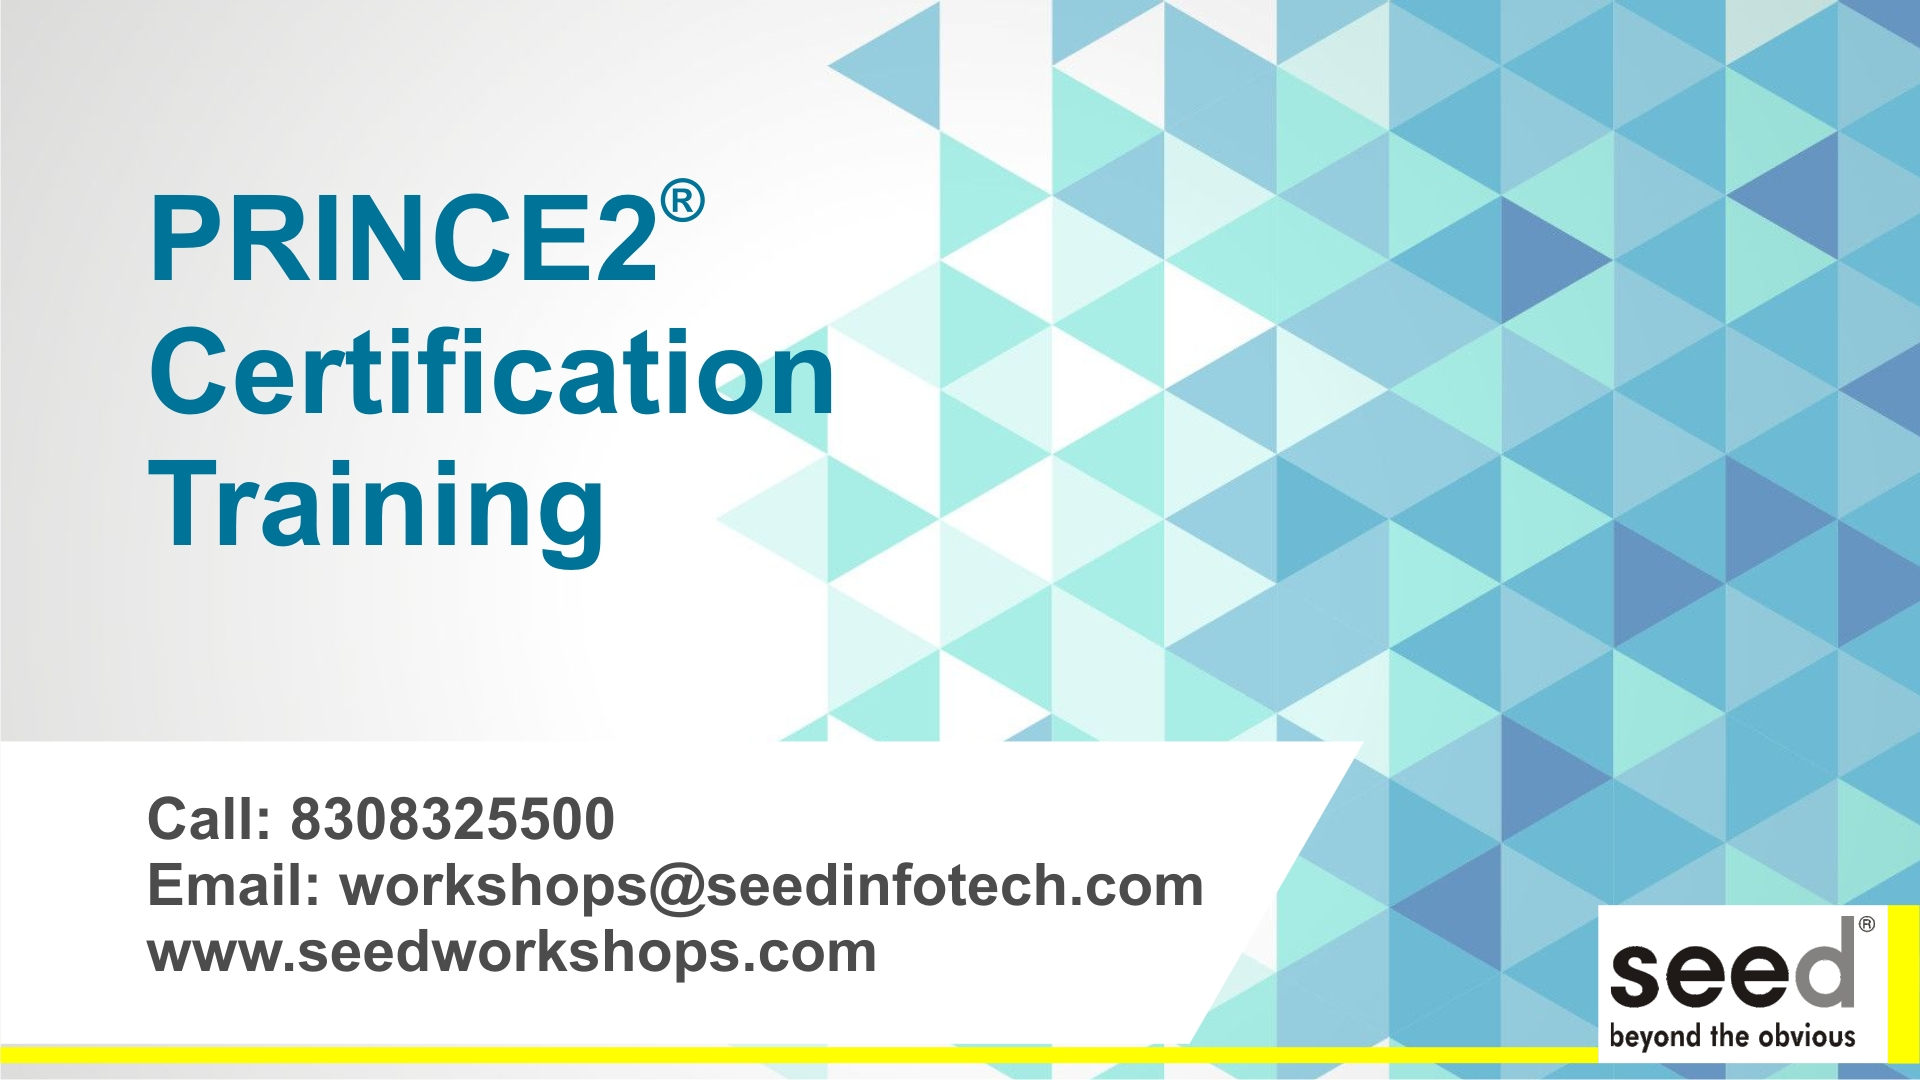 Prince2 certification training in pune pune meraevents prince2 certification training in pune xflitez Images